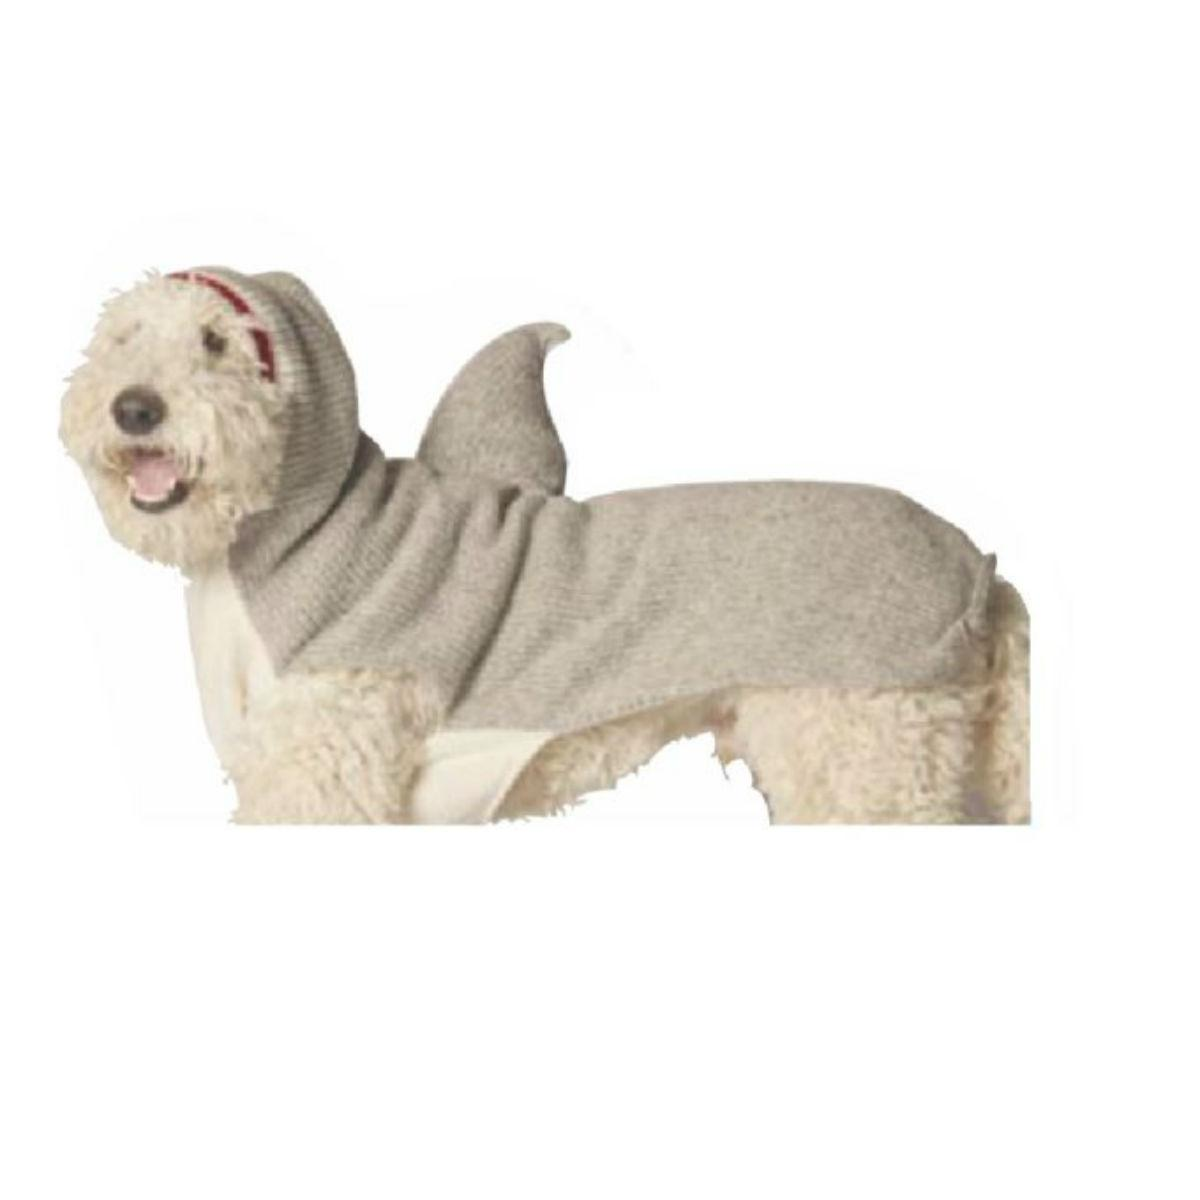 Handmade Shark Hooded Wool Dog Sweater